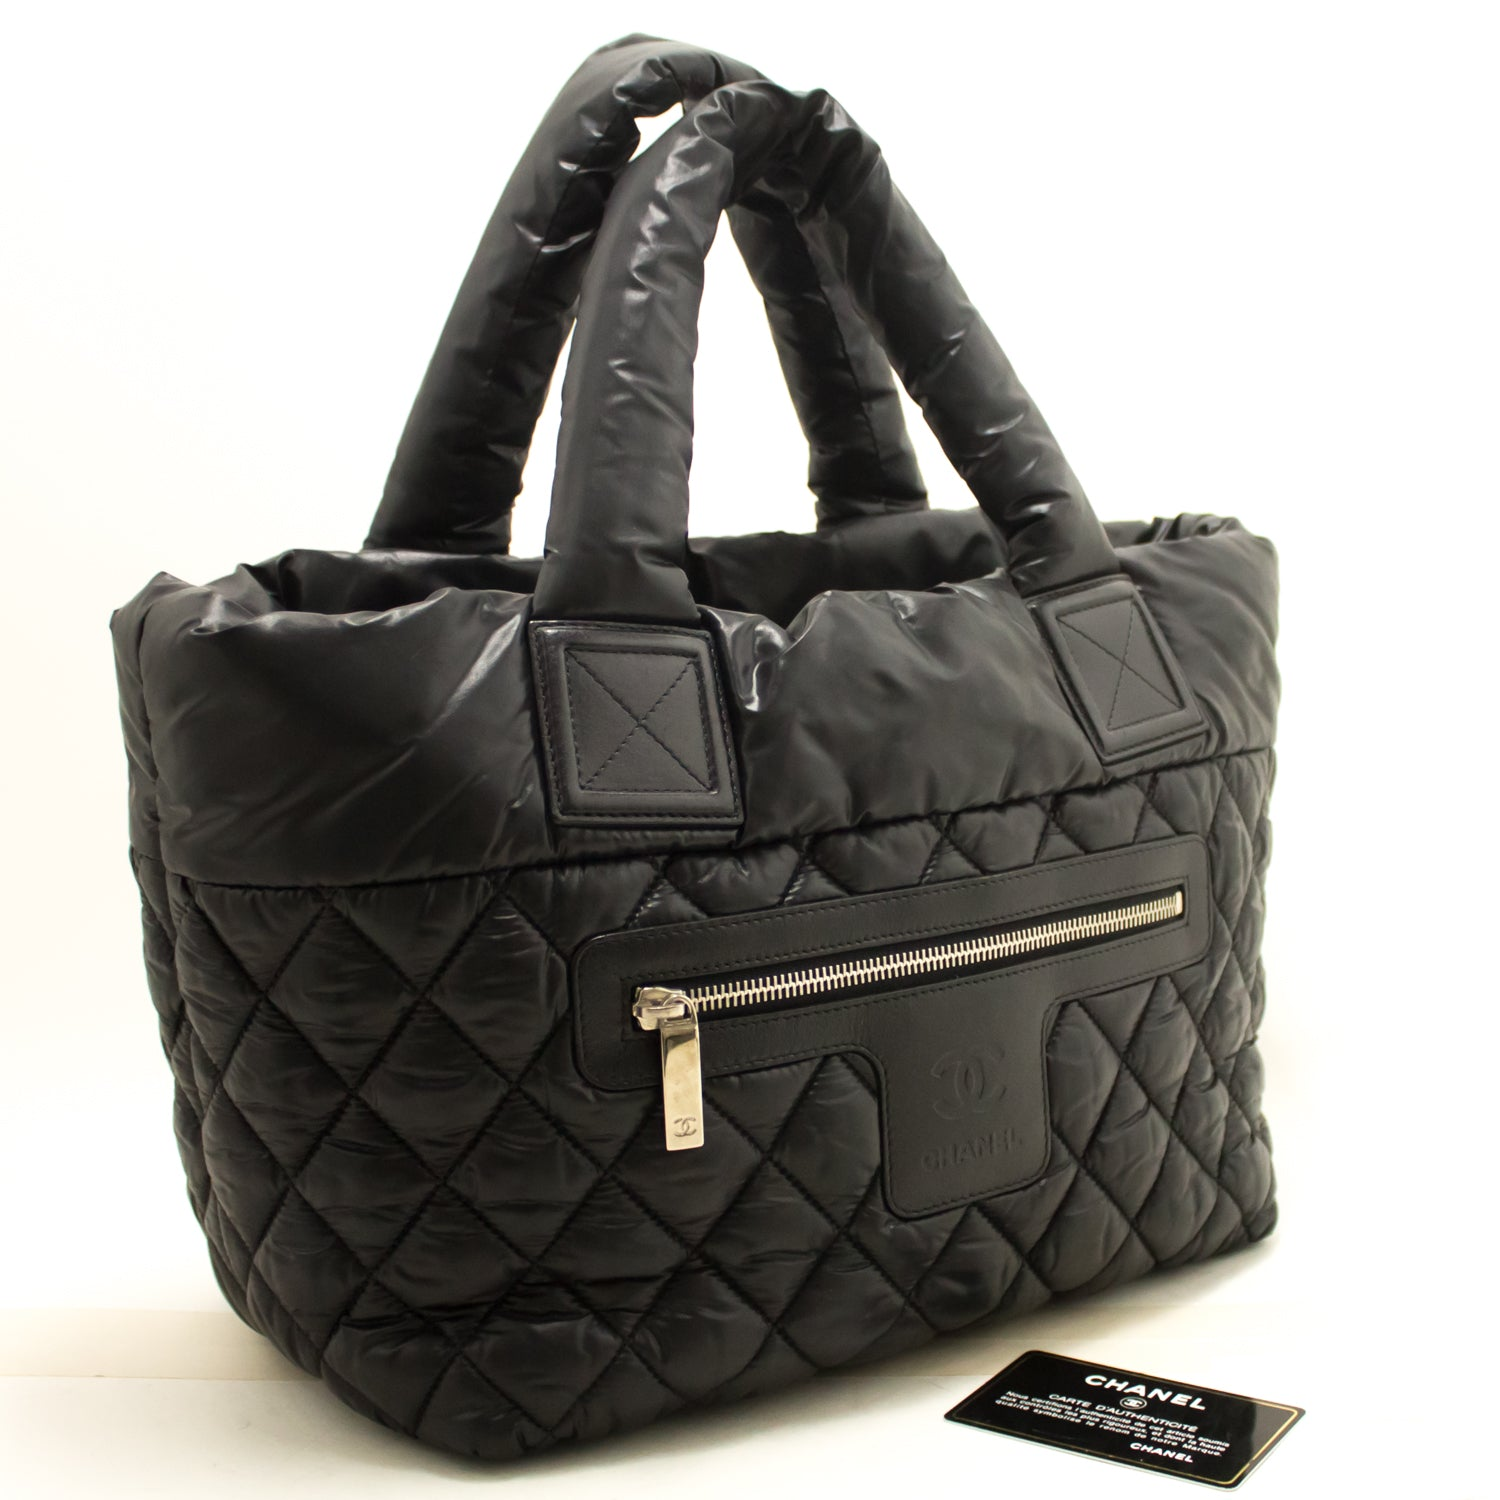 b95871f53664 ... CHANEL Coco Cocoon Nylon Large Tote Bag Black Bordeaux Reversible k93- Chanel-hannari- ...